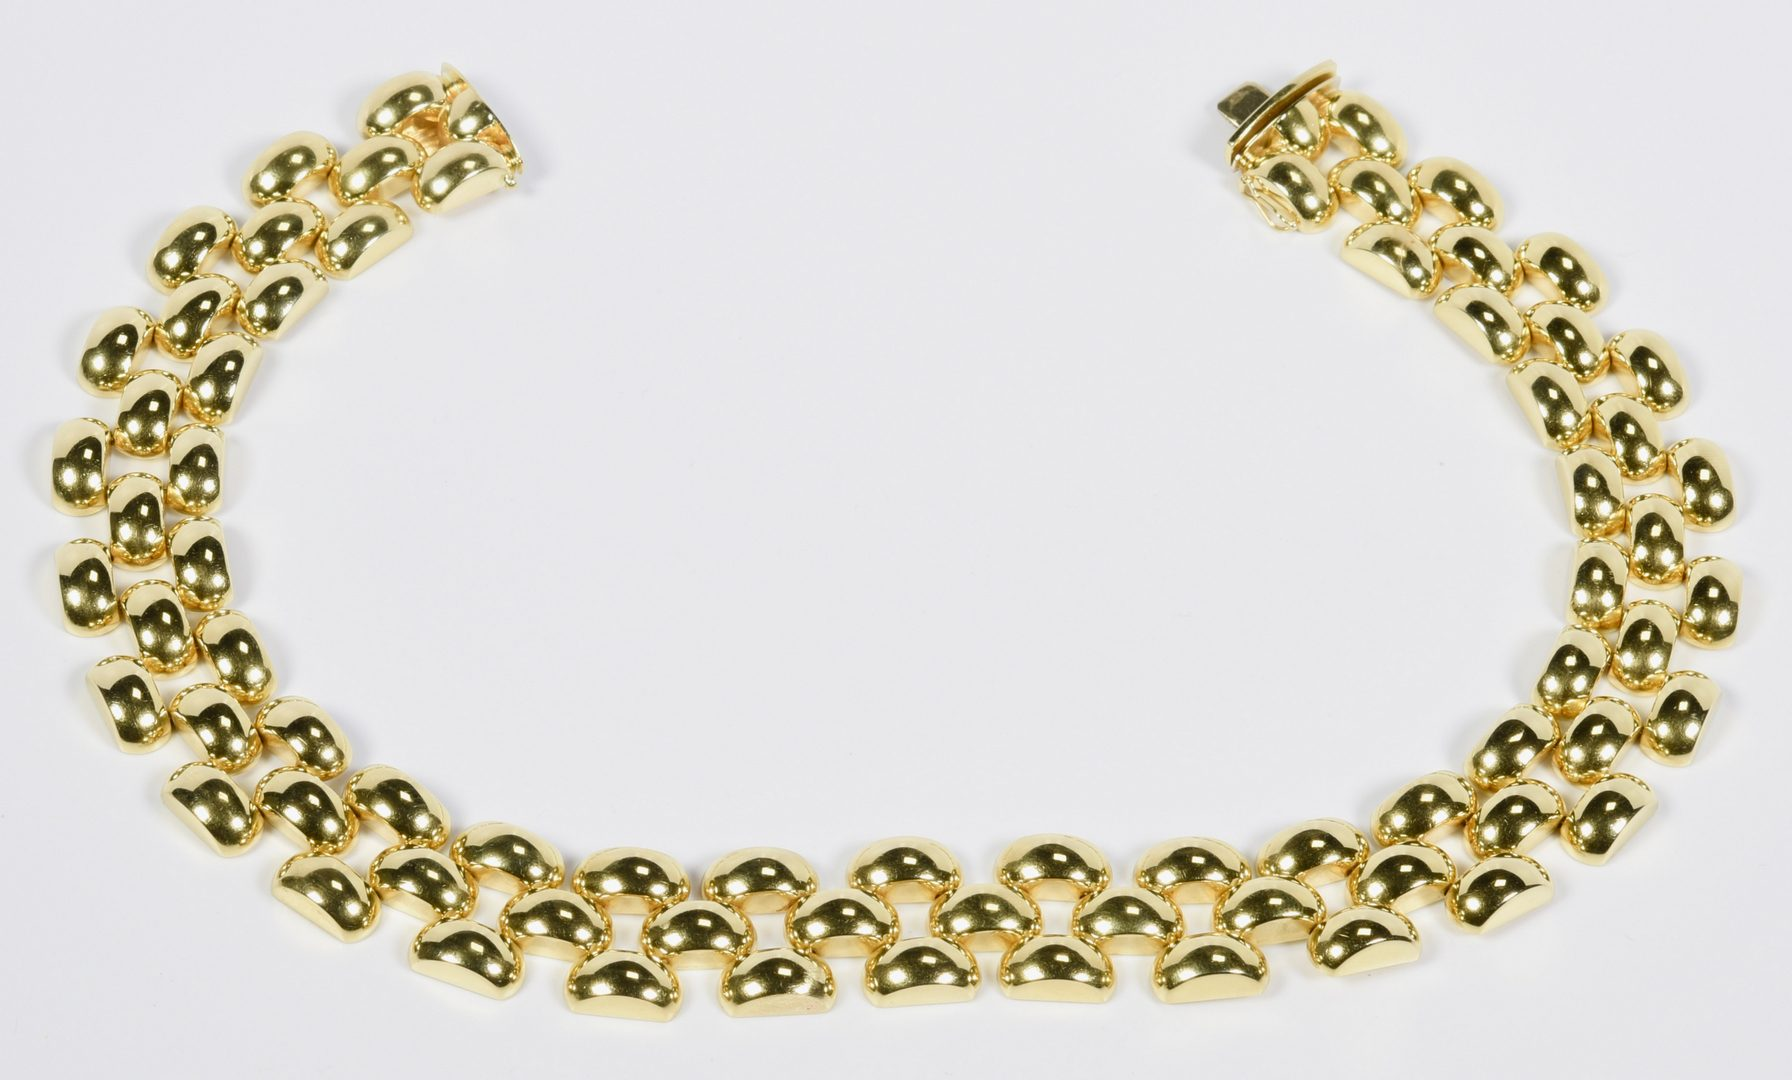 Lot 70: 18K Italian Panther Link Necklace, 125.6 grams